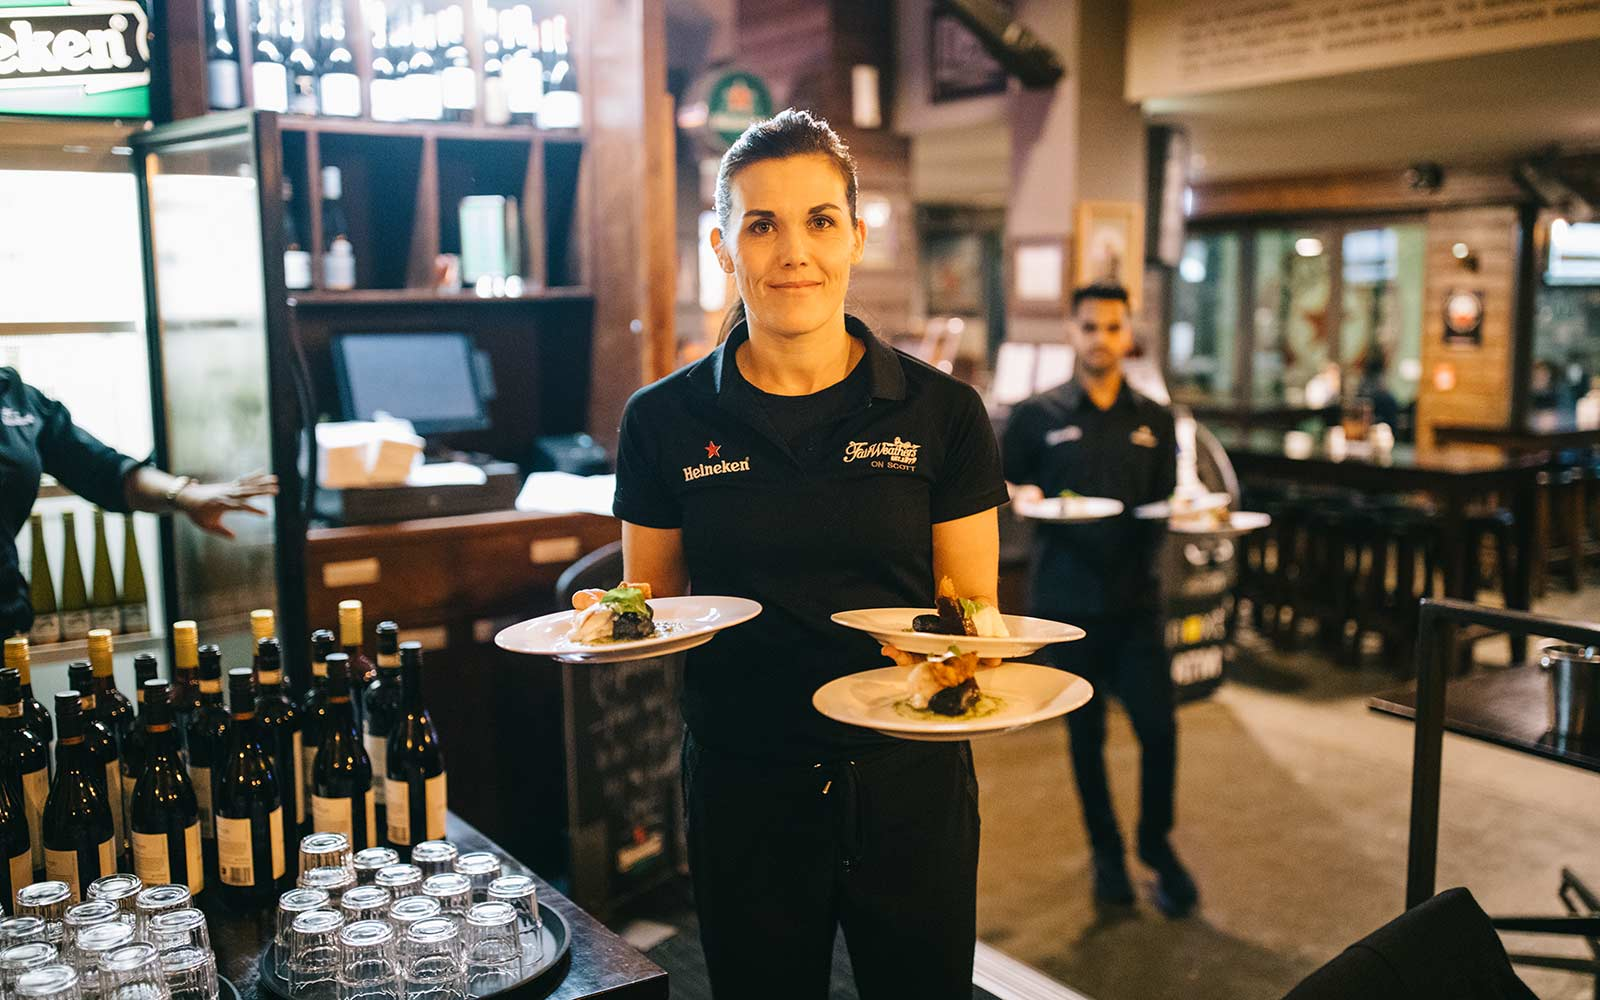 Female waiter looking at camera holding three plates of food